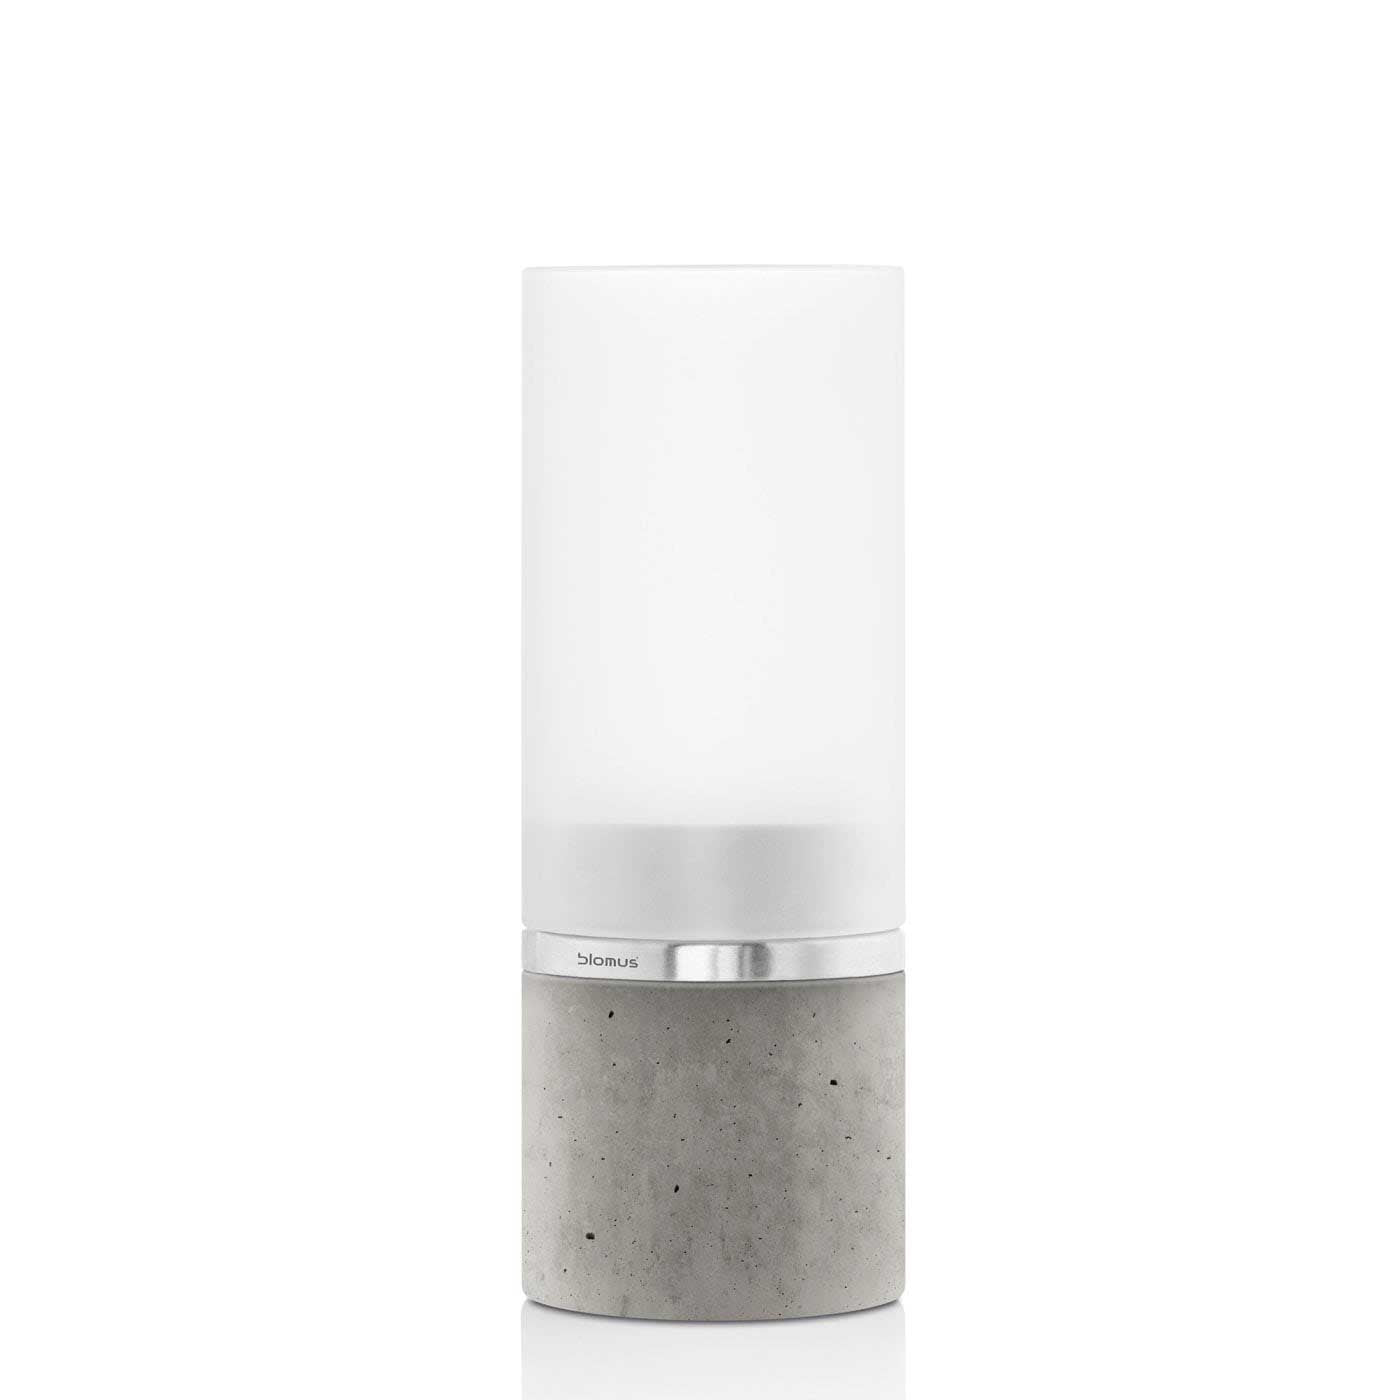 Blomus Tea light holder FARO concrete and glass